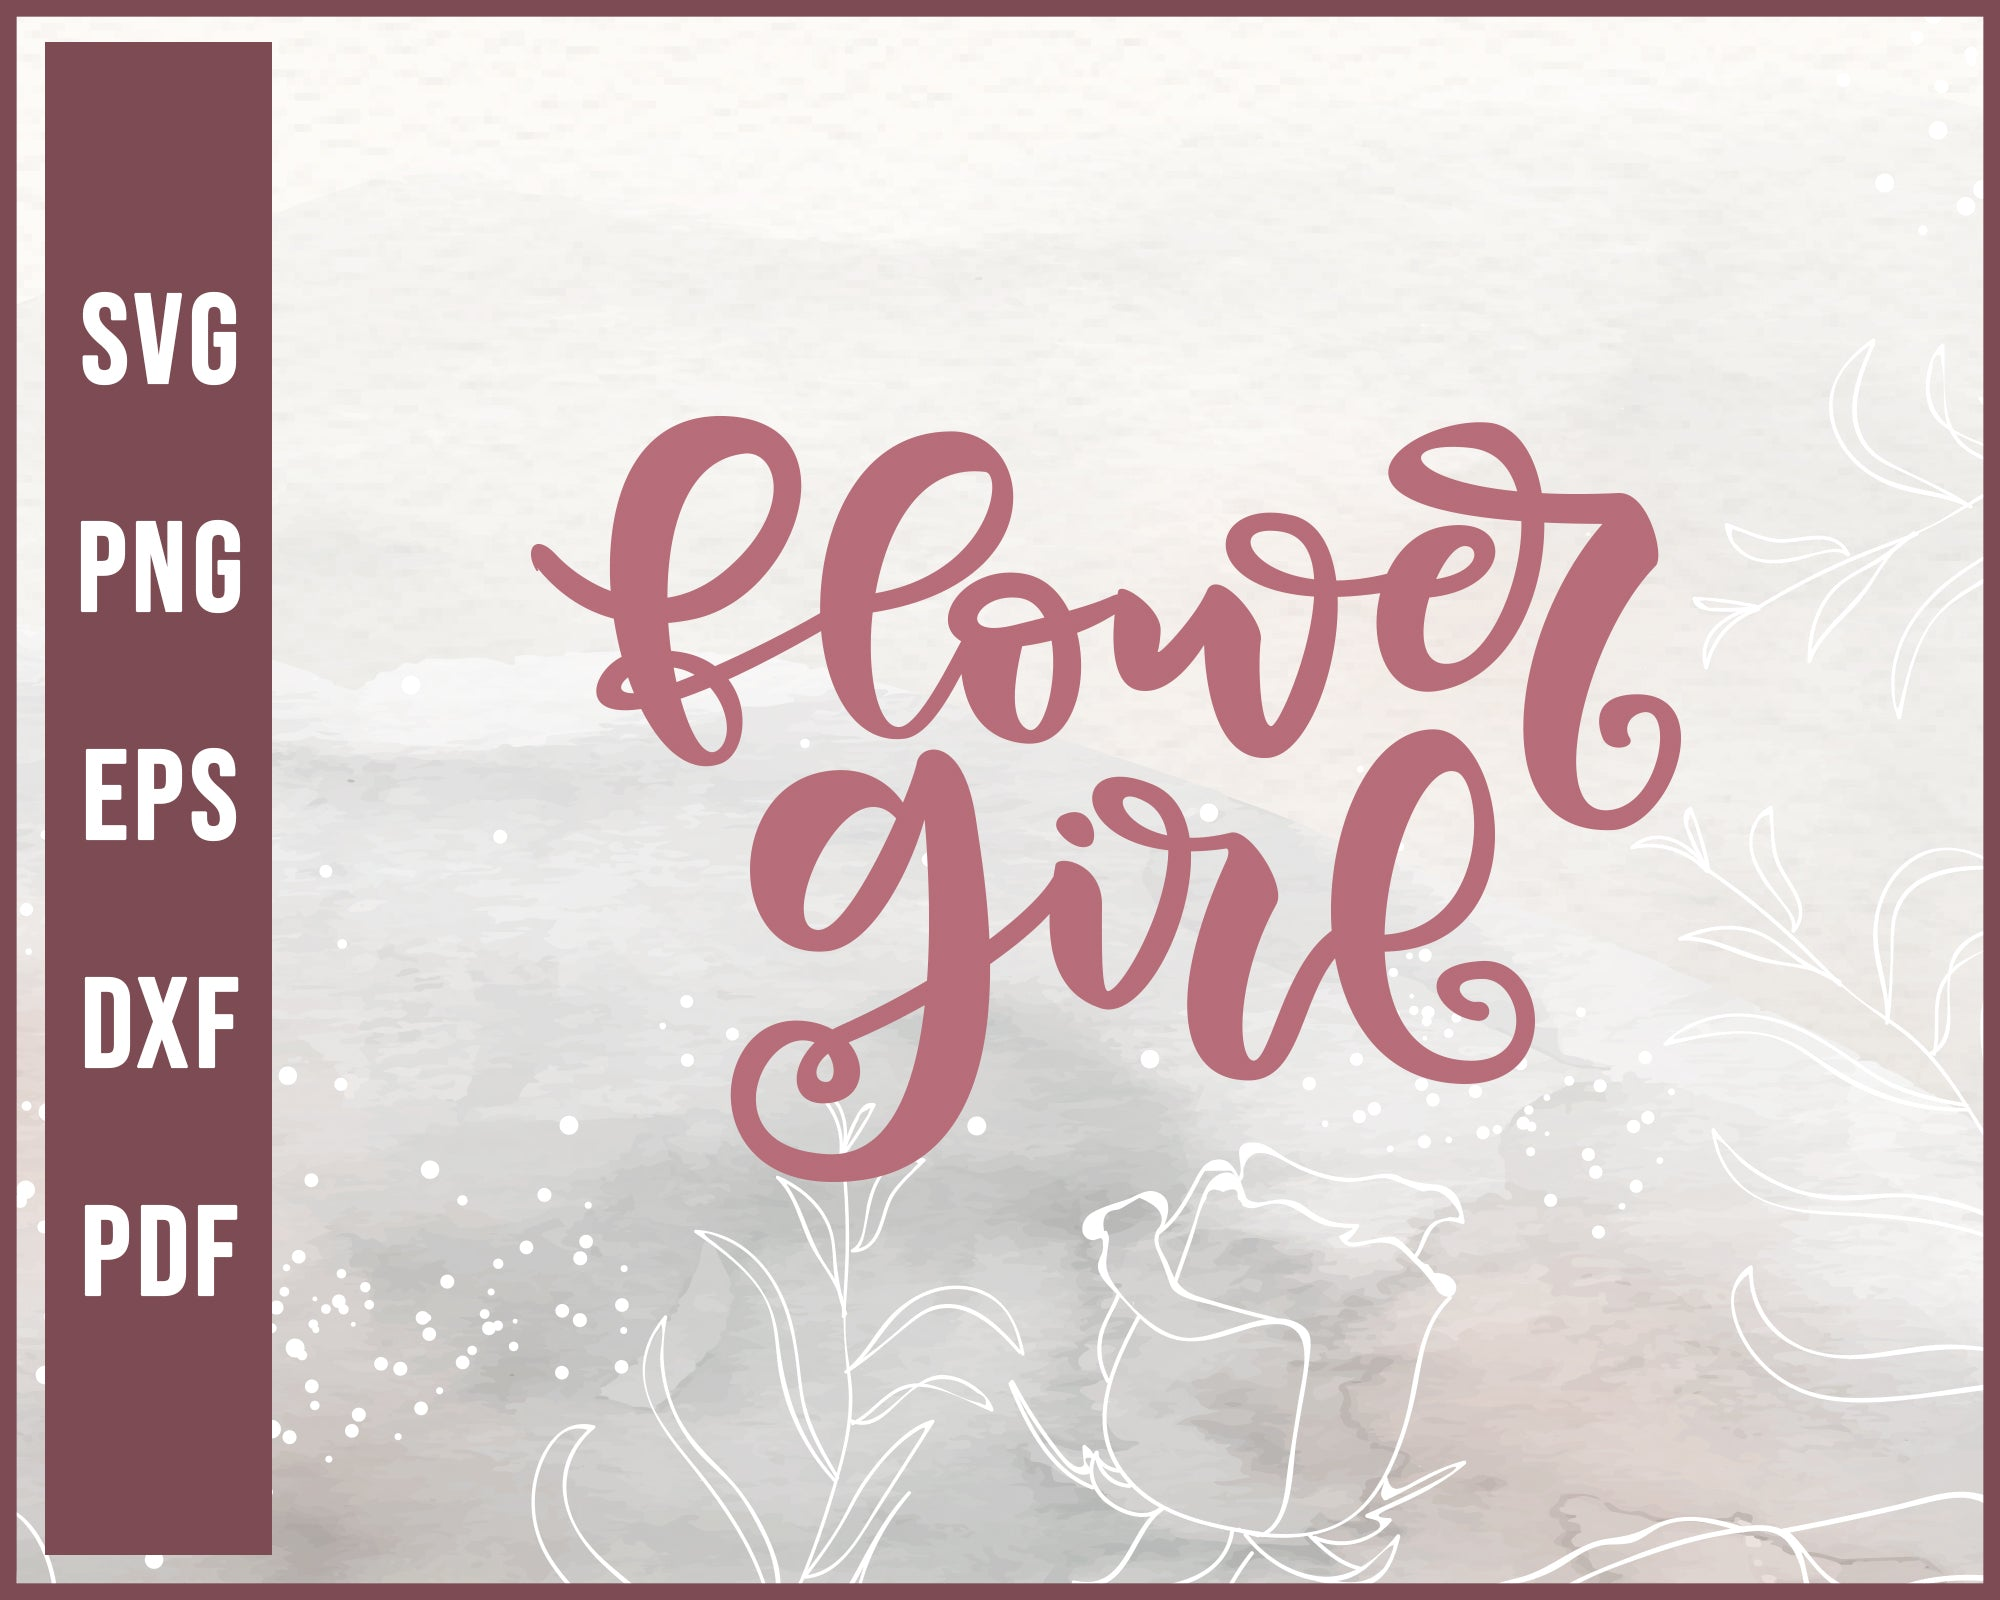 Flower Girl Wedding svg Designs For Cricut Silhouette And eps png Printable Files